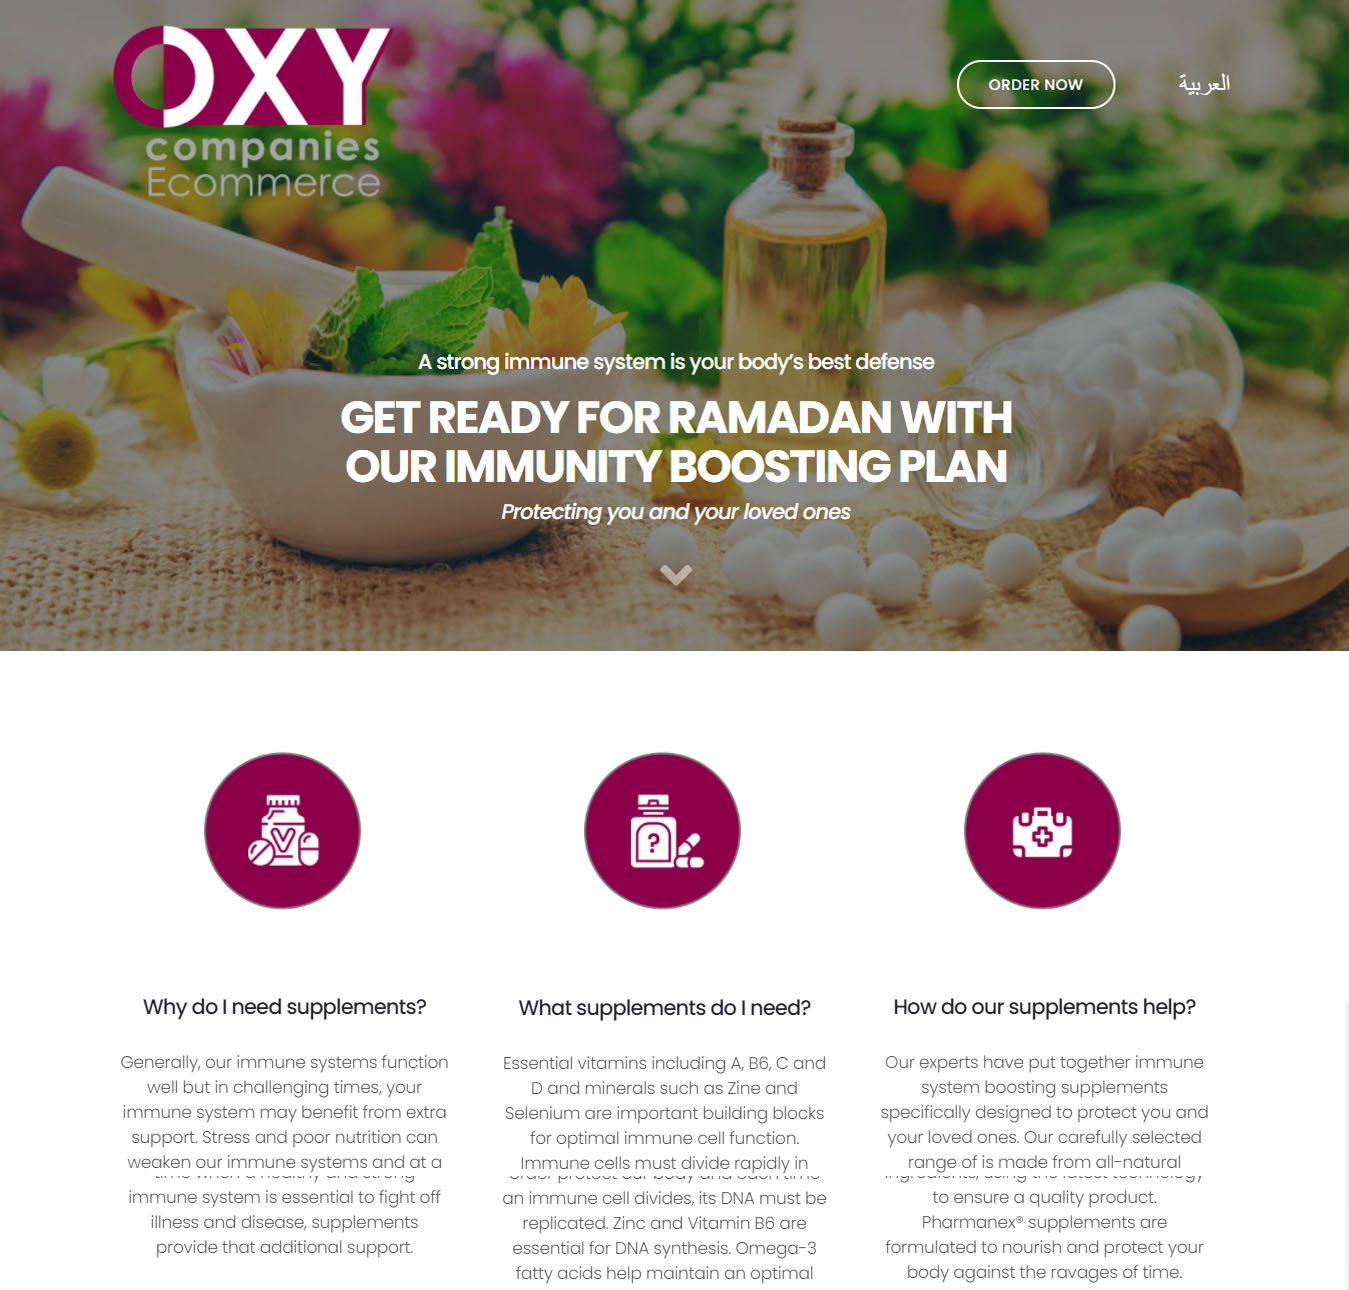 Oxy Companies Food Supplement